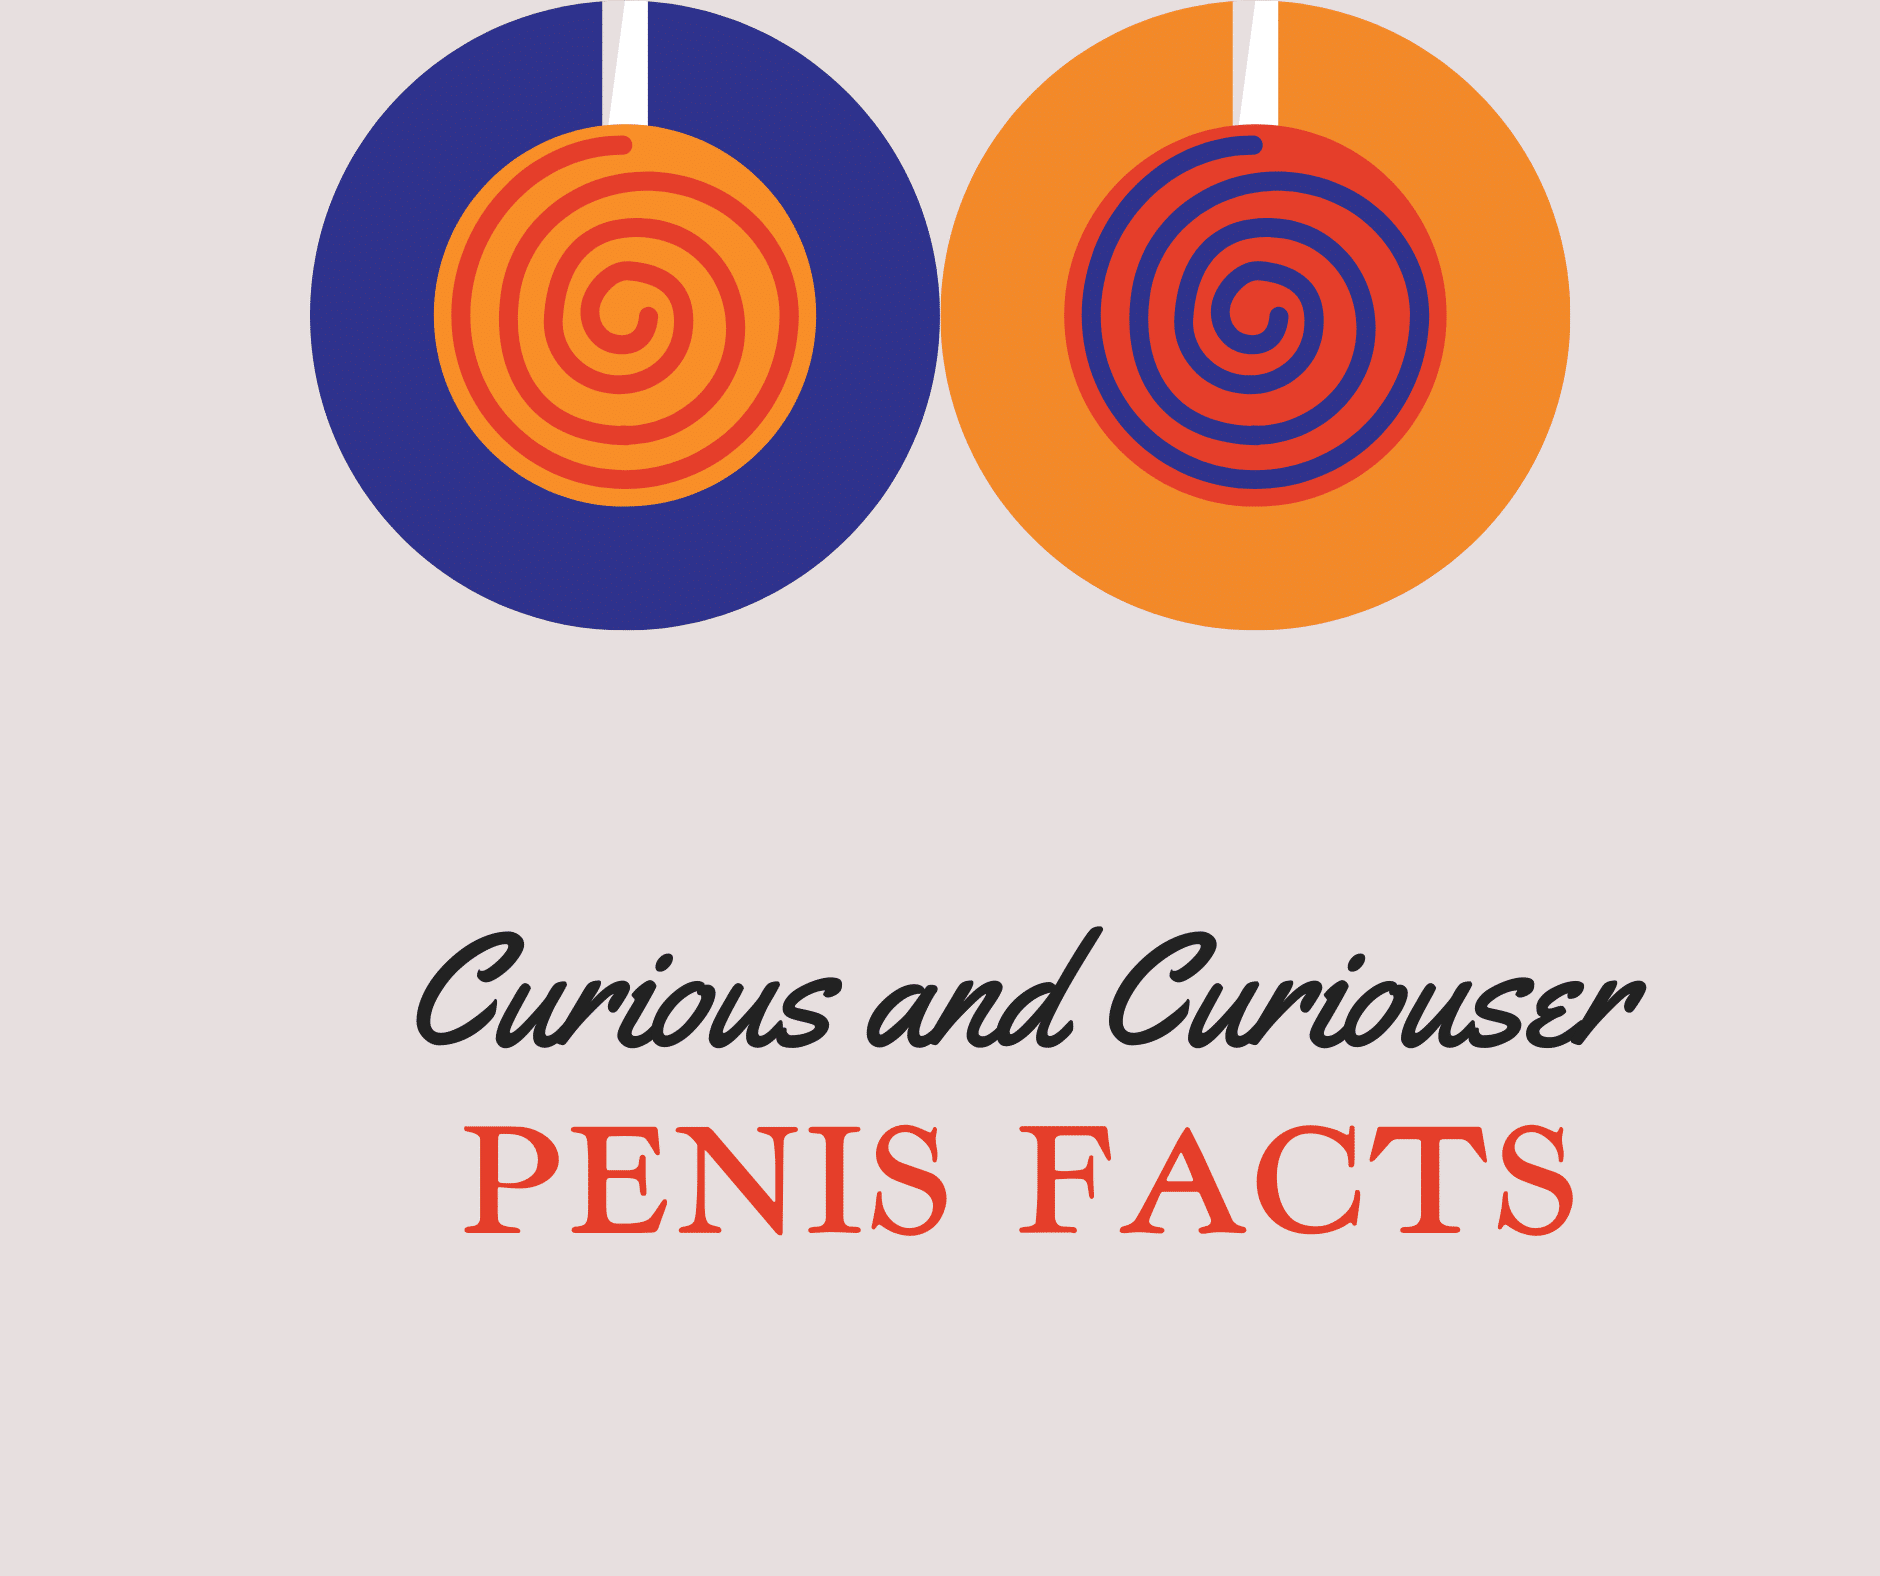 10 Curious and Curiouser Penis Facts